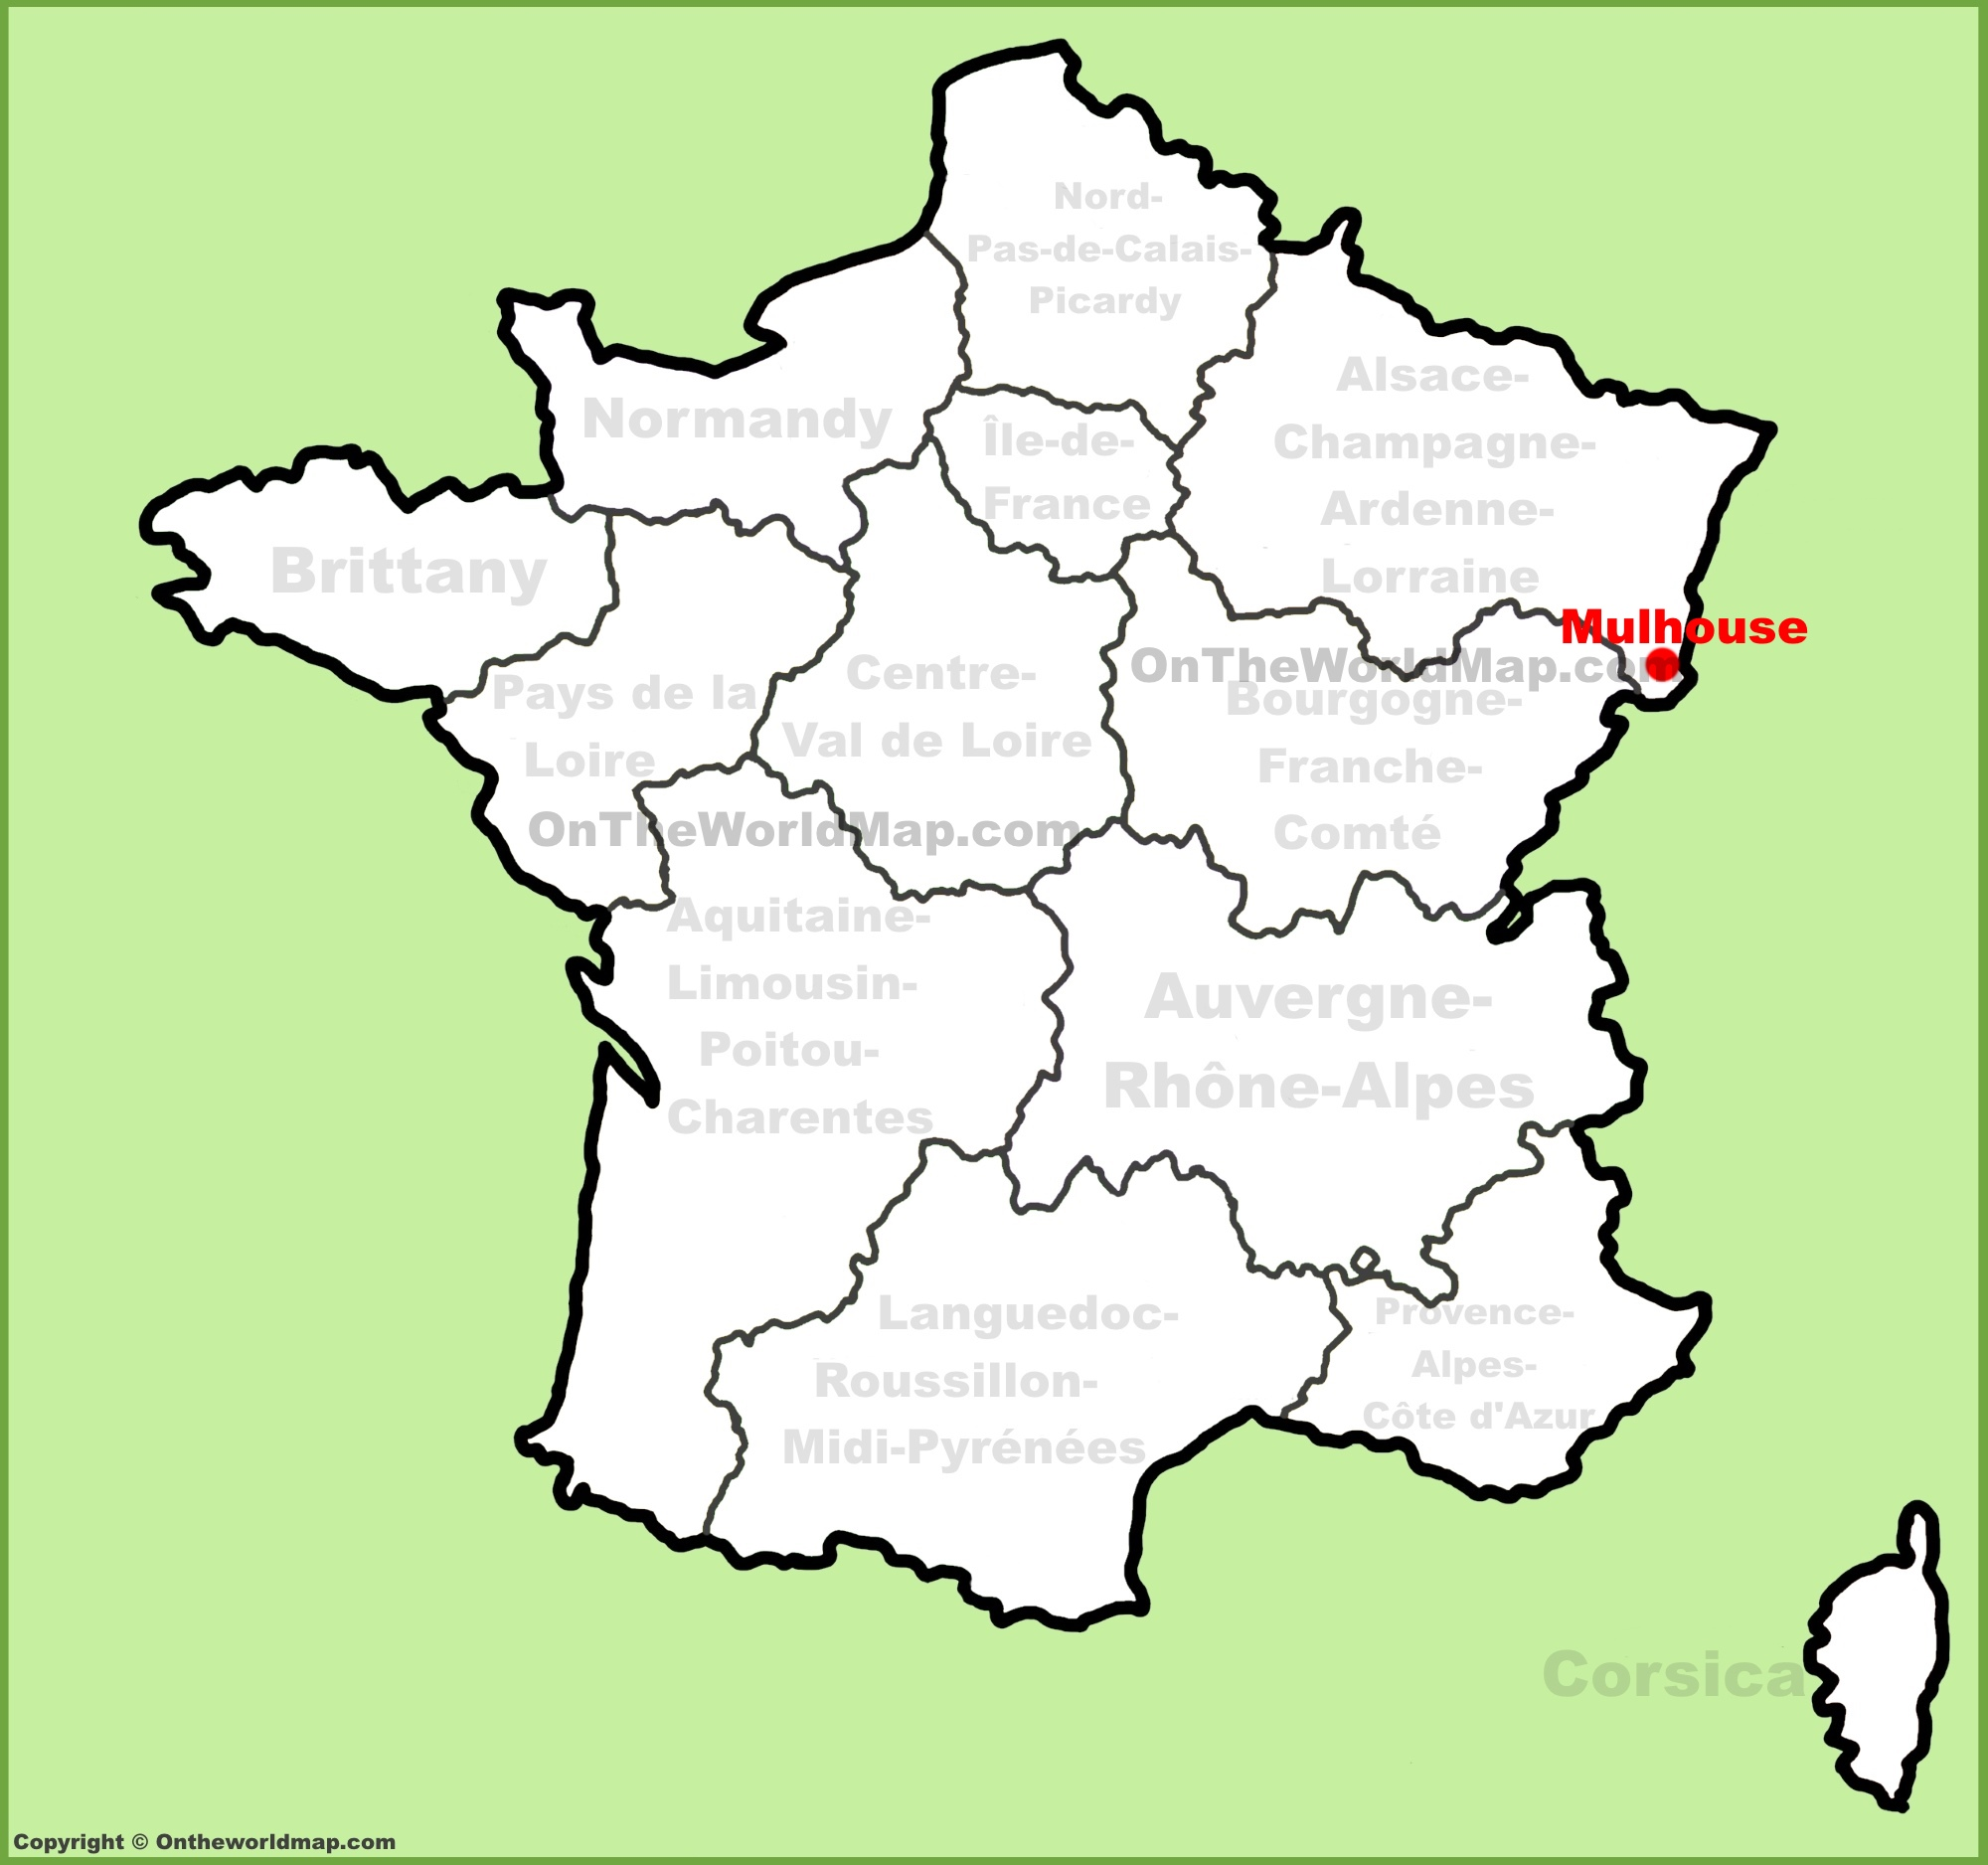 Mulhouse location on the France map